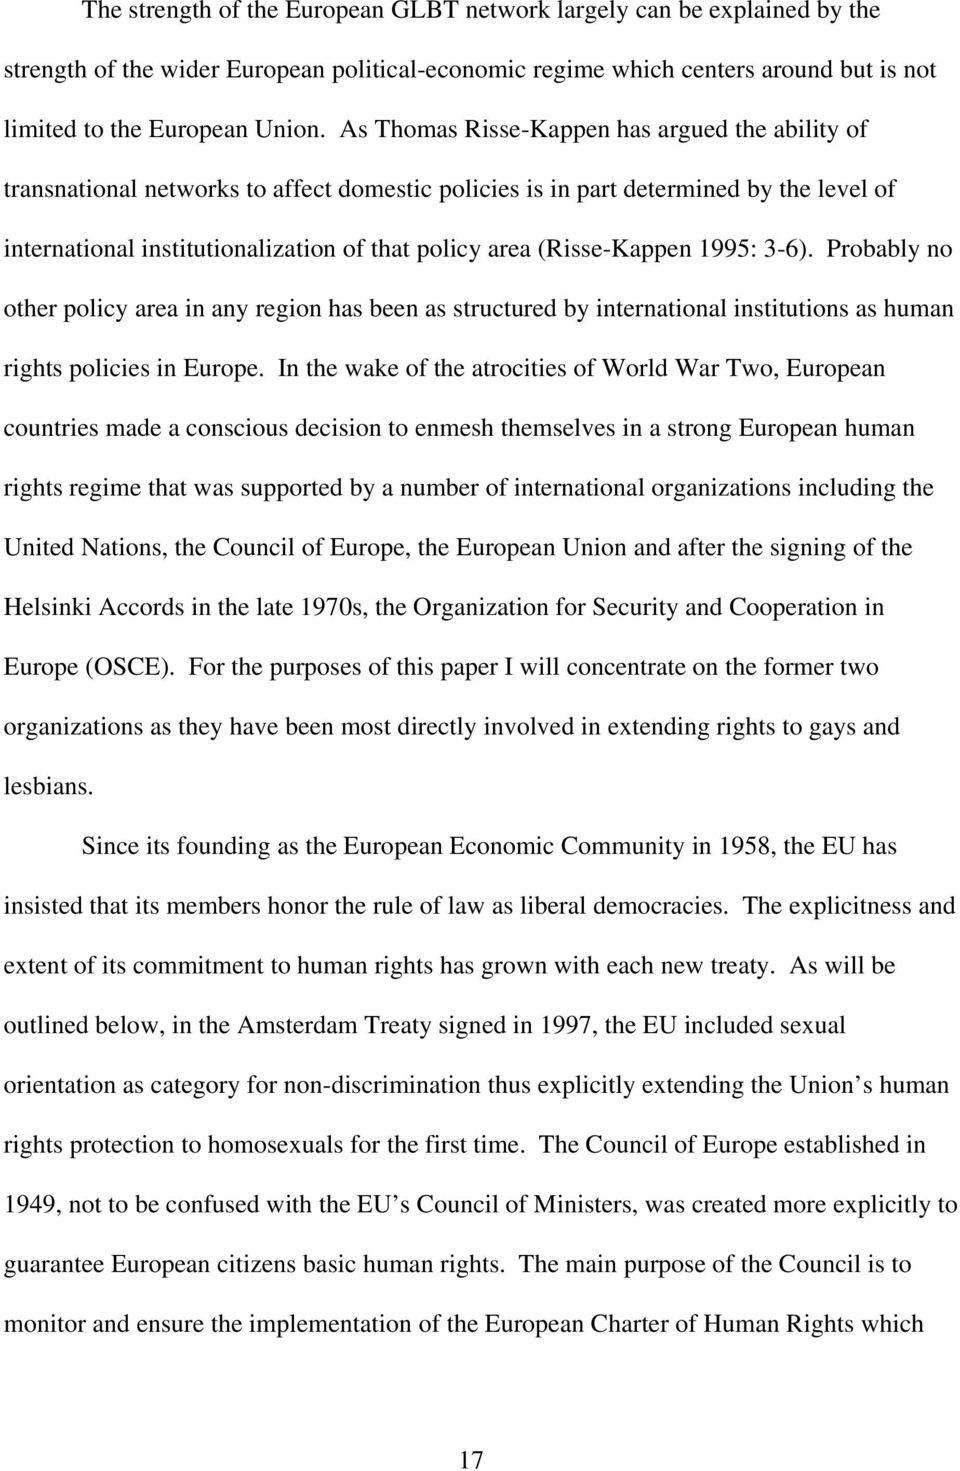 (Risse-Kappen 1995: 3-6). Probably no other policy area in any region has been as structured by international institutions as human rights policies in Europe.